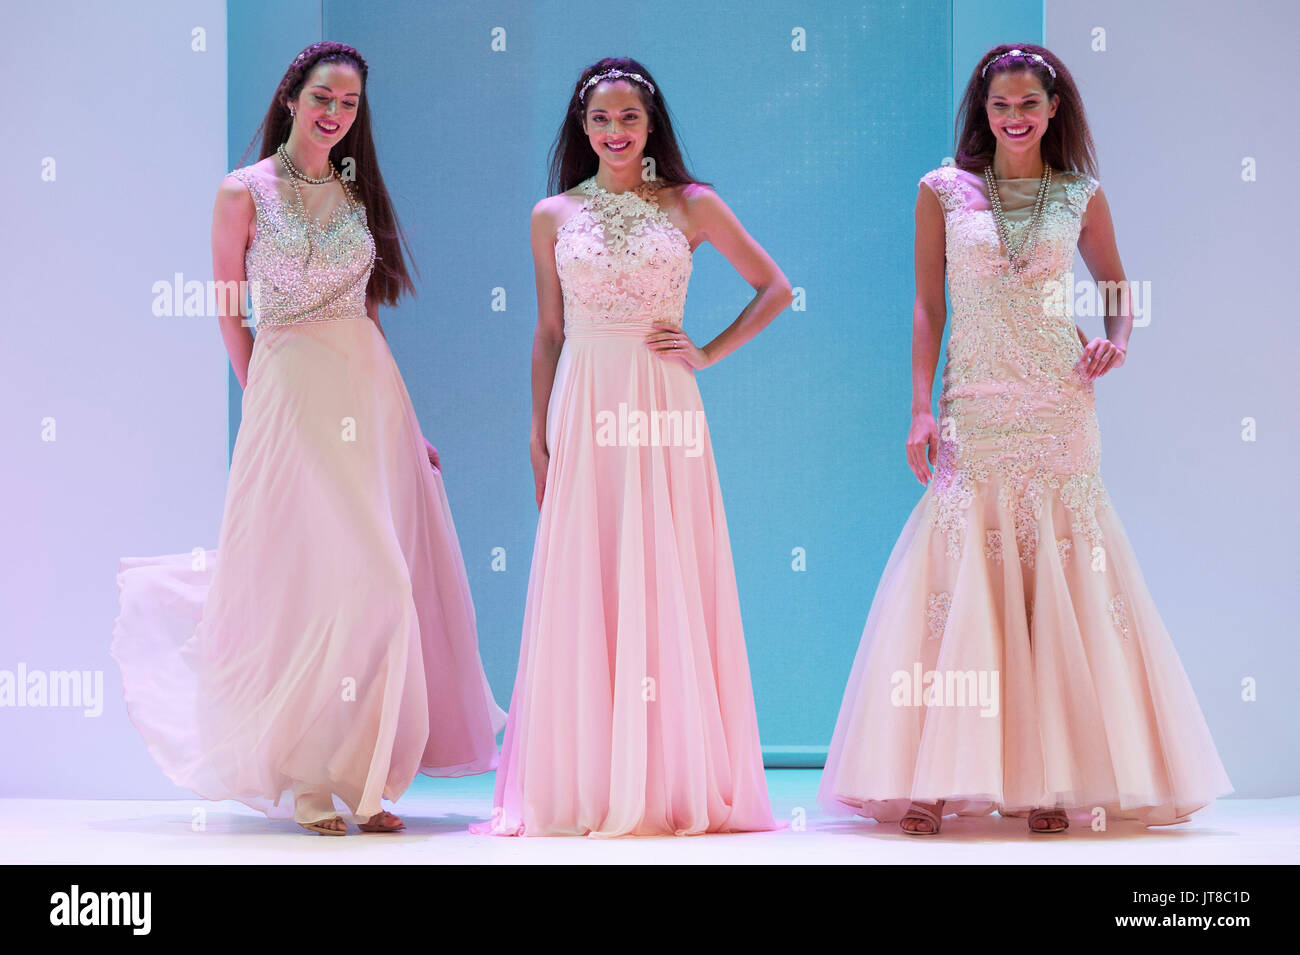 Prom Gowns Imágenes De Stock & Prom Gowns Fotos De Stock - Alamy